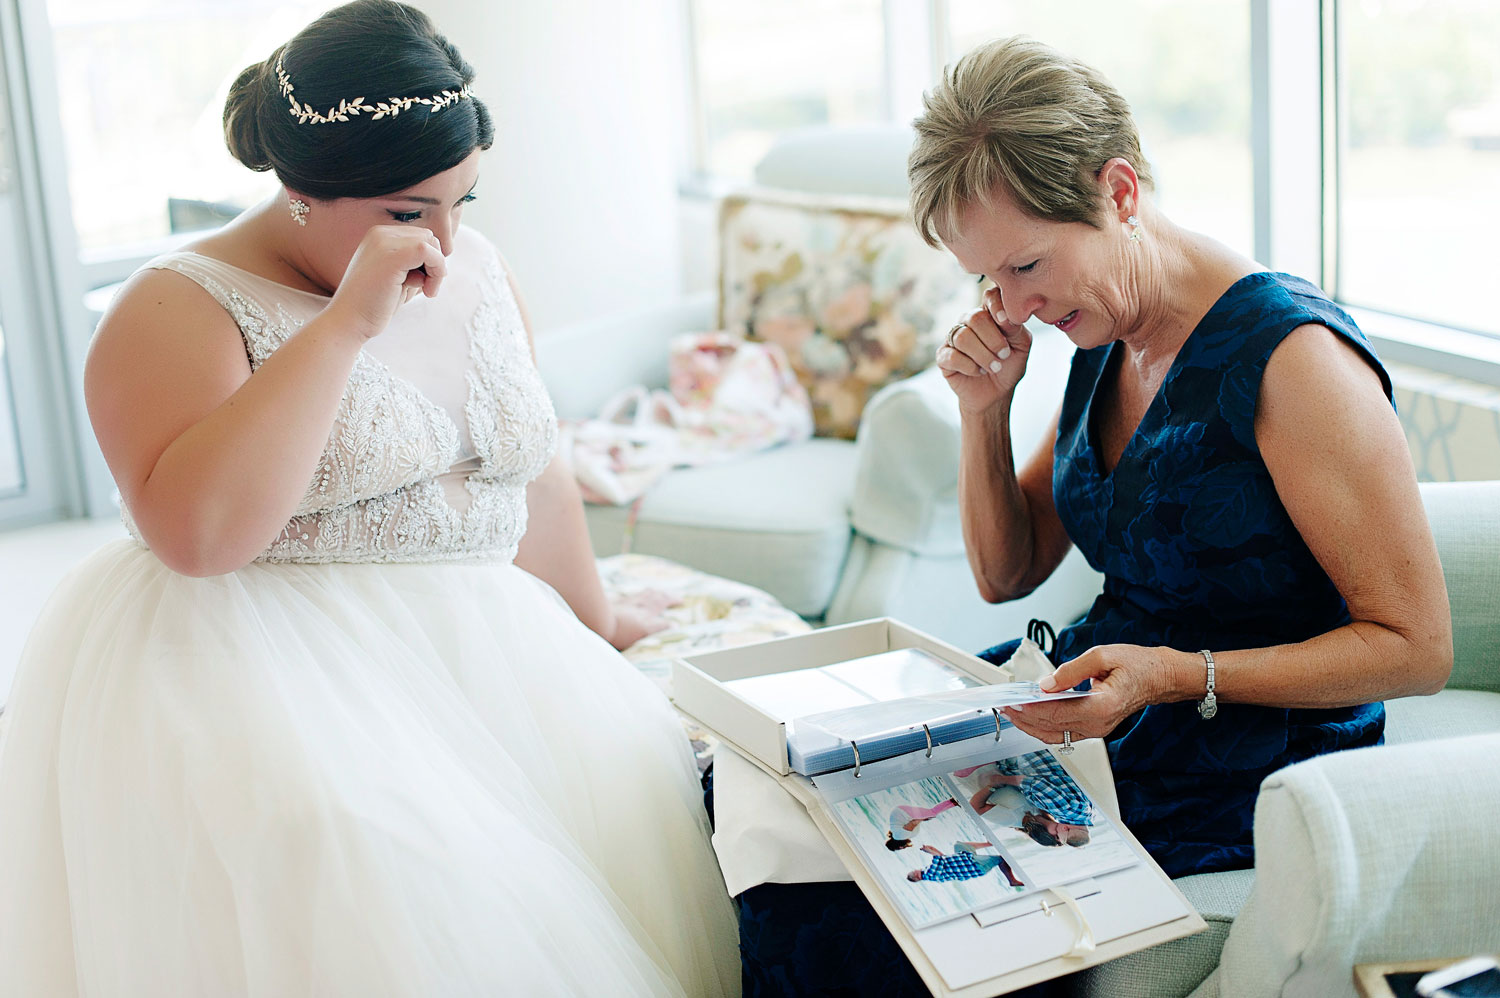 Mother of bride and bride crying happy tears while looking through photo album wedding day